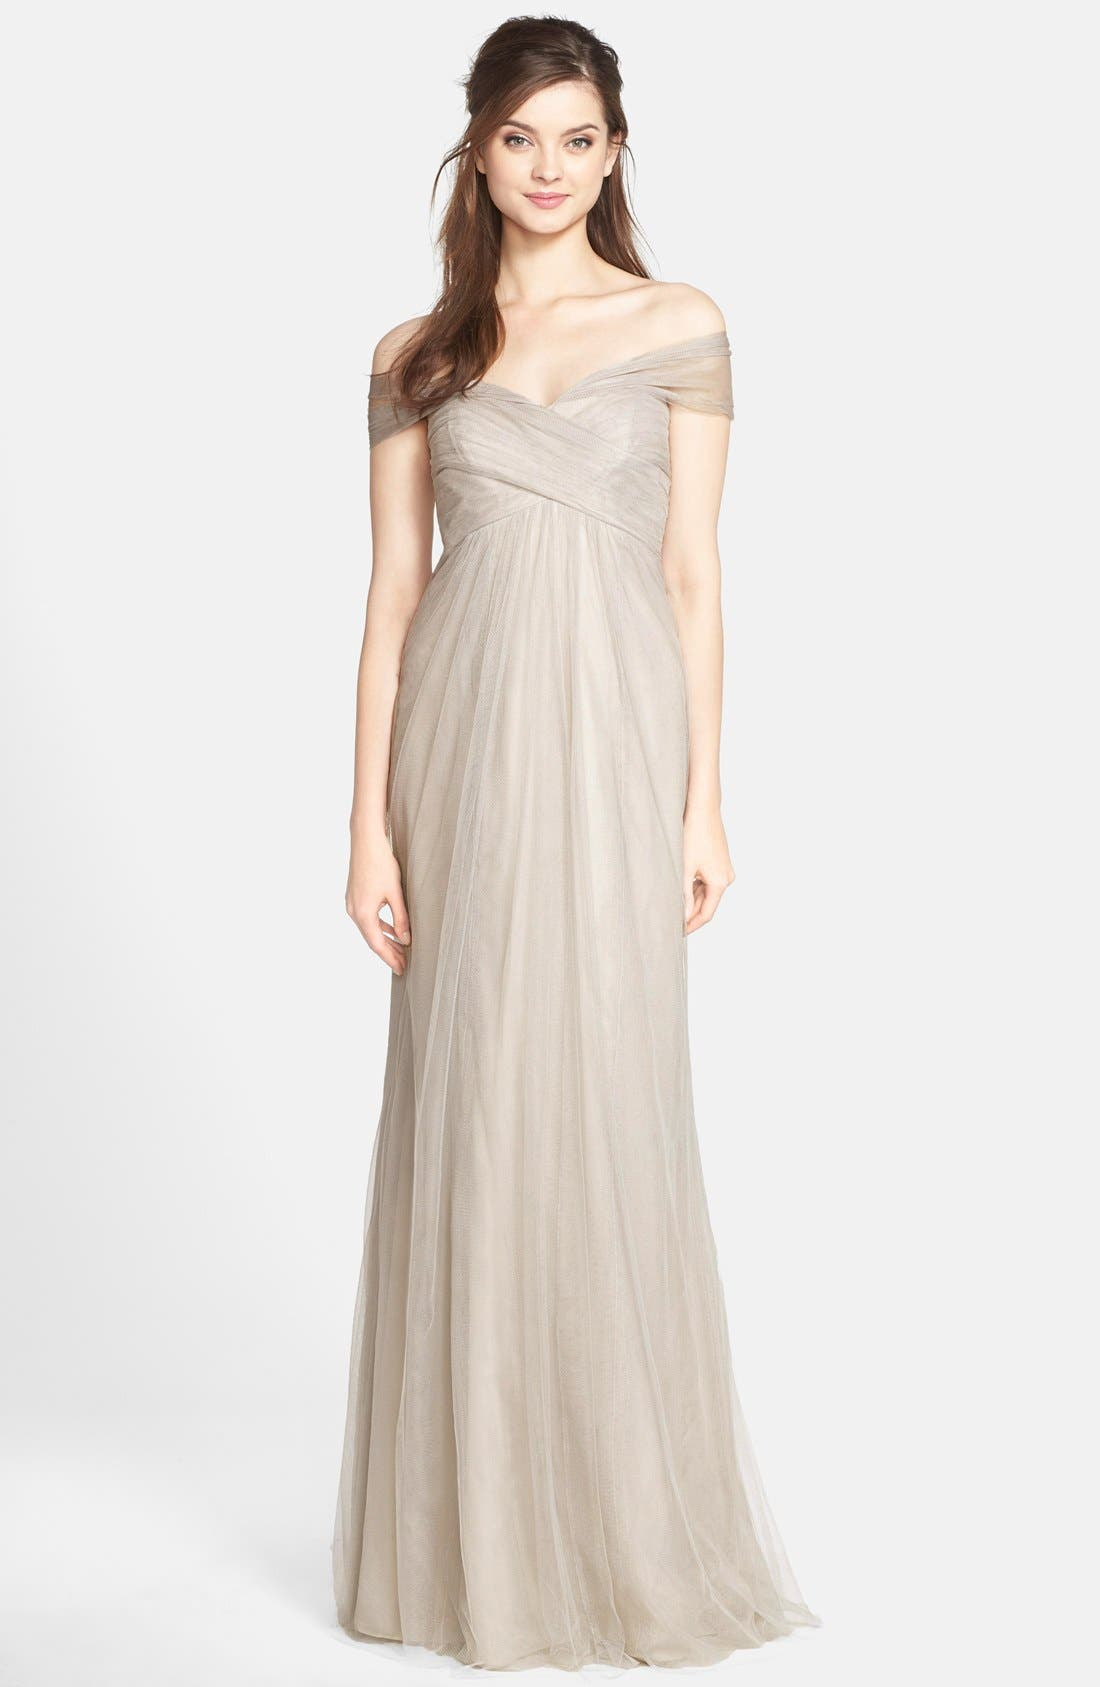 Main Image - Jenny Yoo 'Willow' Convertible Tulle Gown